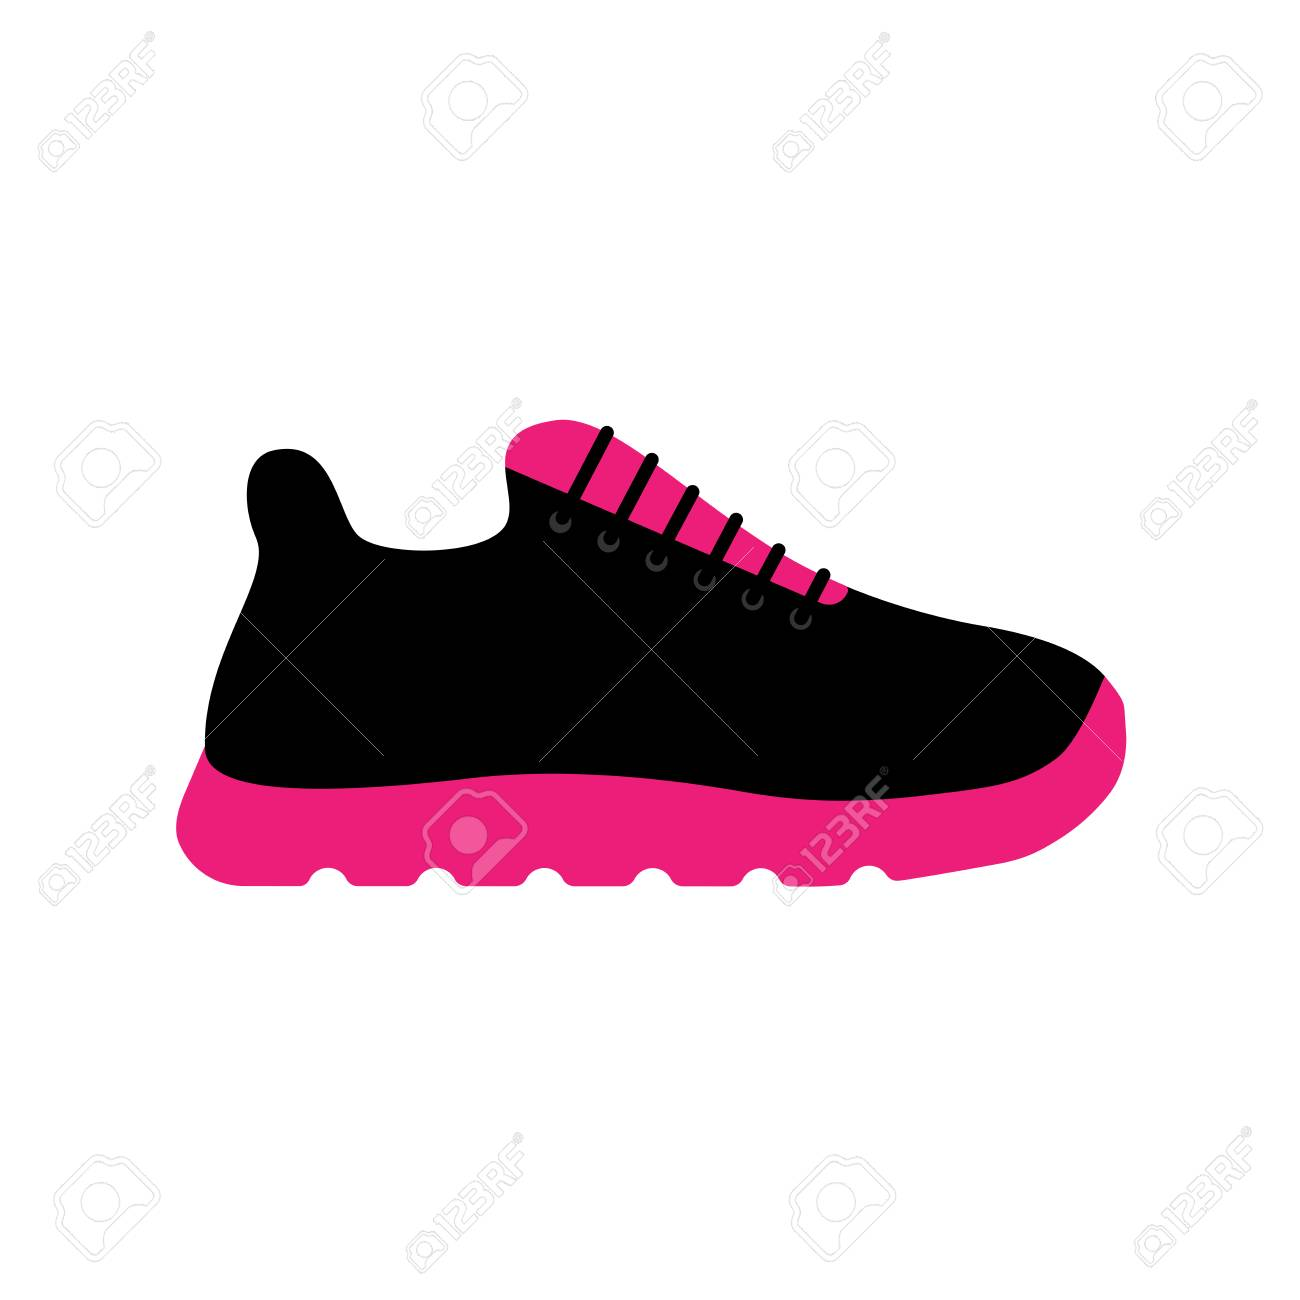 f7395c61fb0cf Vector - Vector illustration icon of sport running shoes for girl and women  (sneakers). Black and pink colors. White background